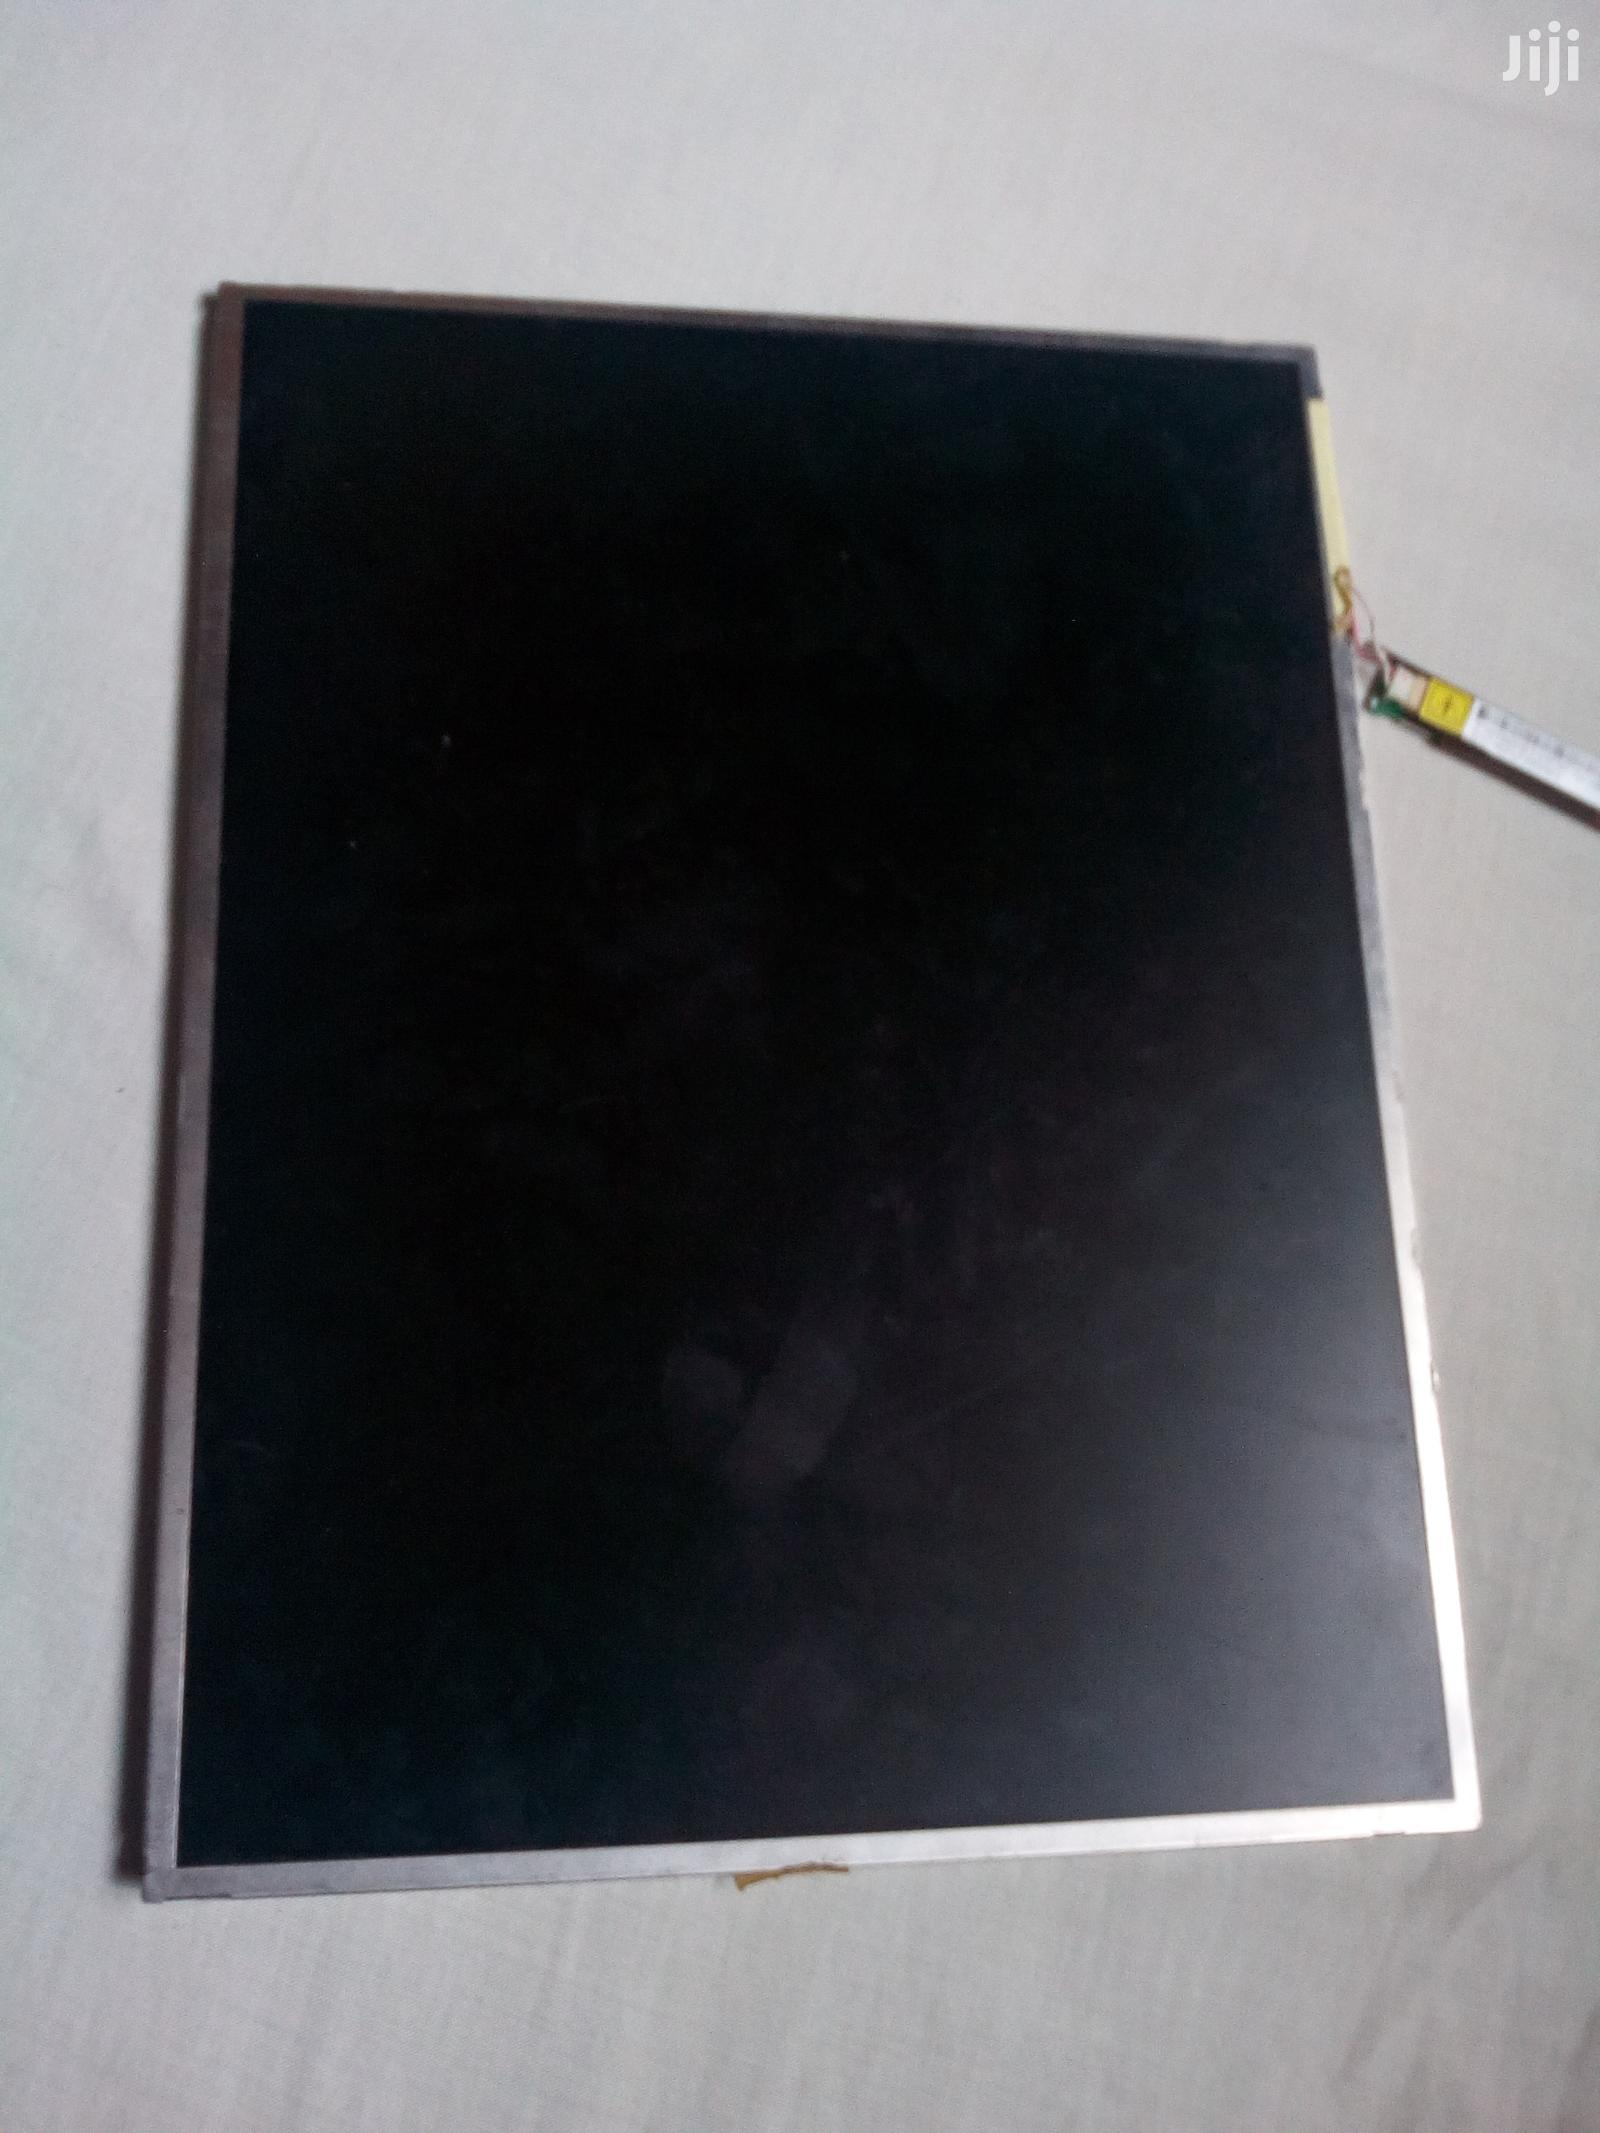 Archive: 15.0 LED Laptop Screen For Sale